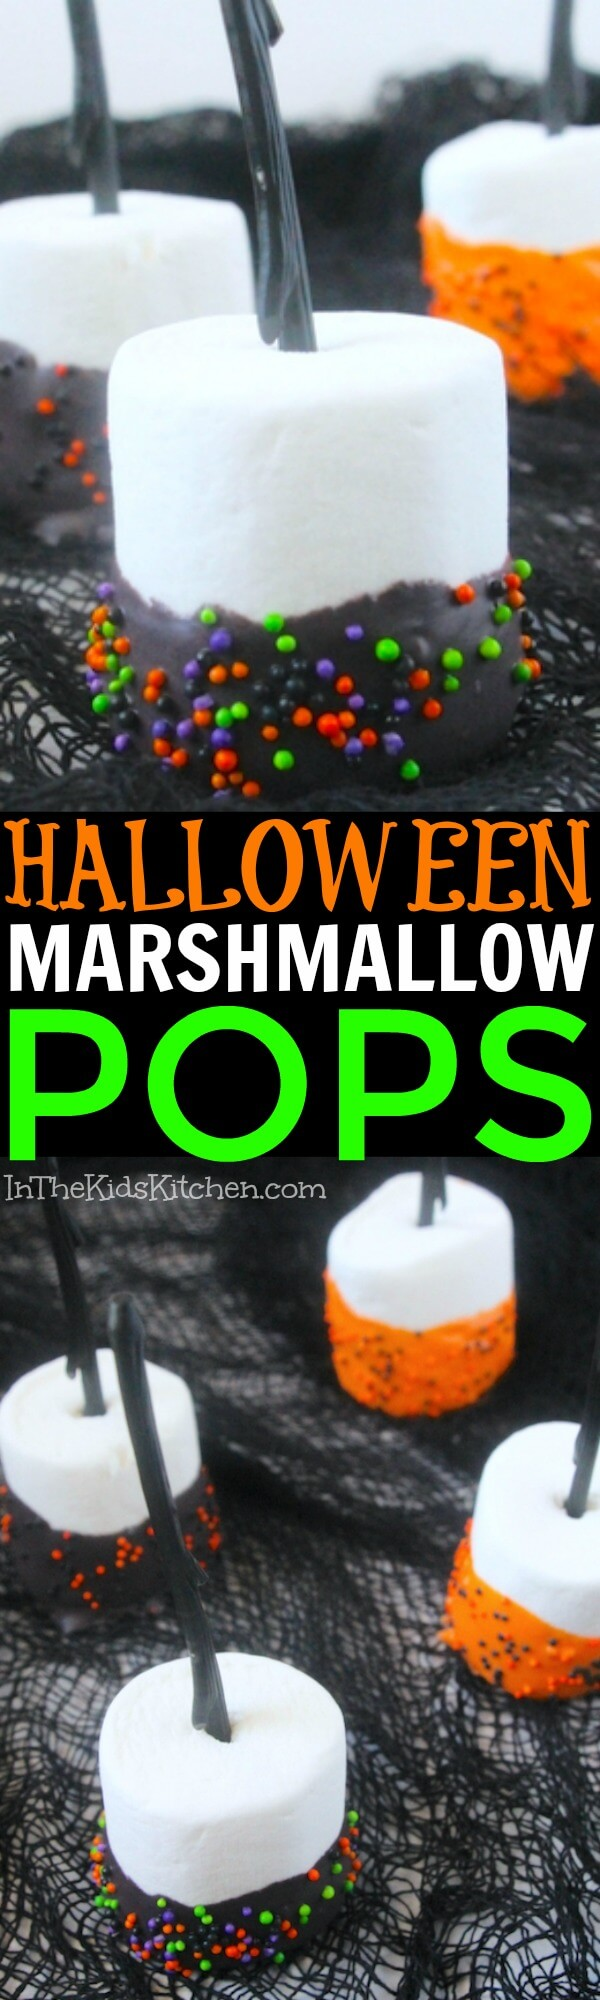 A quick & easy party treat that kids will love to make! These orange and black sprinkle Halloween Marshmallow Pops are spooky cute fun!